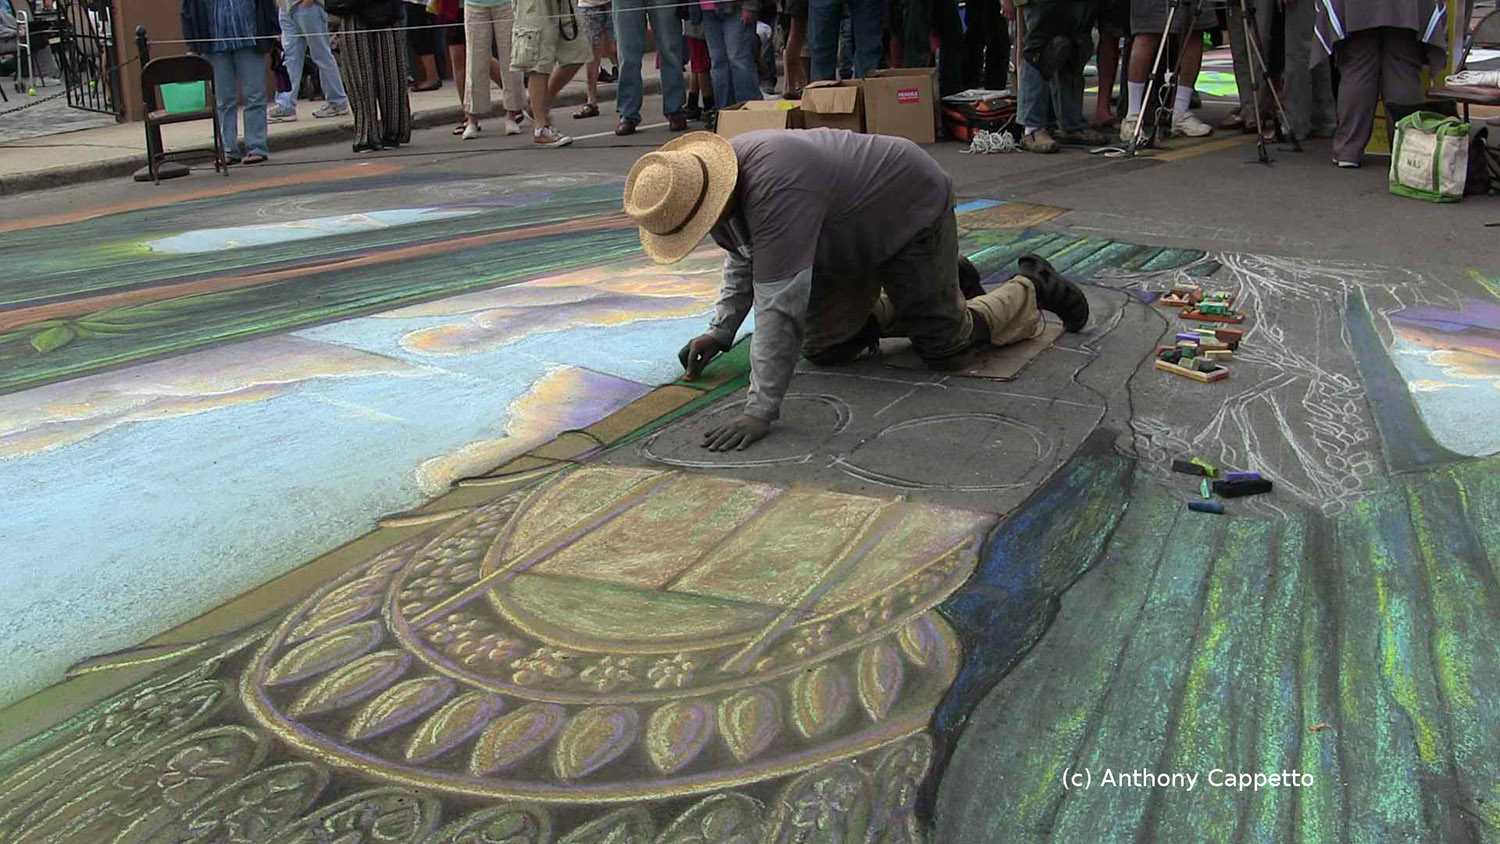 An artist on their hands and knees building up and detailing among an audience of thousands...